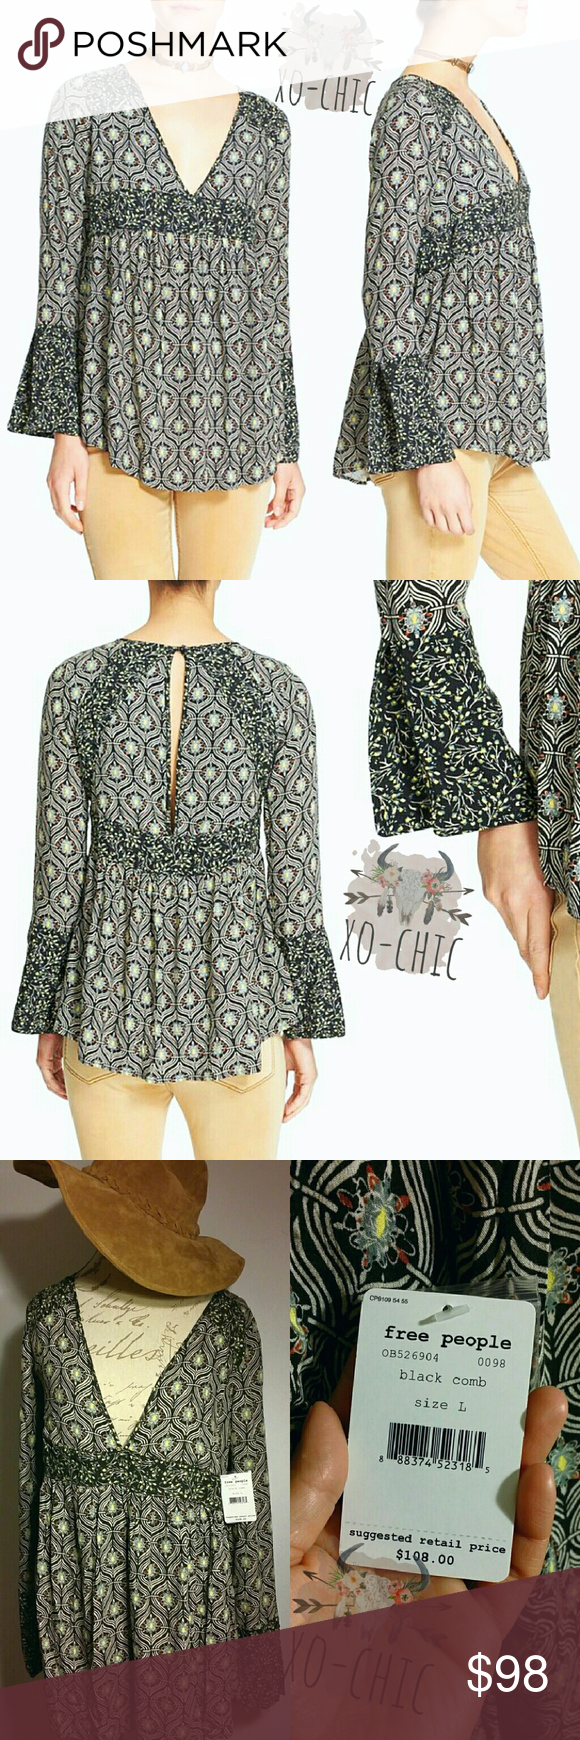 NWT L Free People Tunic Bell Sleeve Top FIRM PRICE New in Stores retails $108 NWT L size...A floaty woven tunic is perfectly breezy for warm weather and easy to layer come fall. The deep V-neckline and slender keyhole back show just enough skin, while a complementary print highlights the shoulders, Empire waist and split-cuff bell sleeves. Color: black combo, green combo. Brand: FREE PEOPLE. Free People Tops Tunics